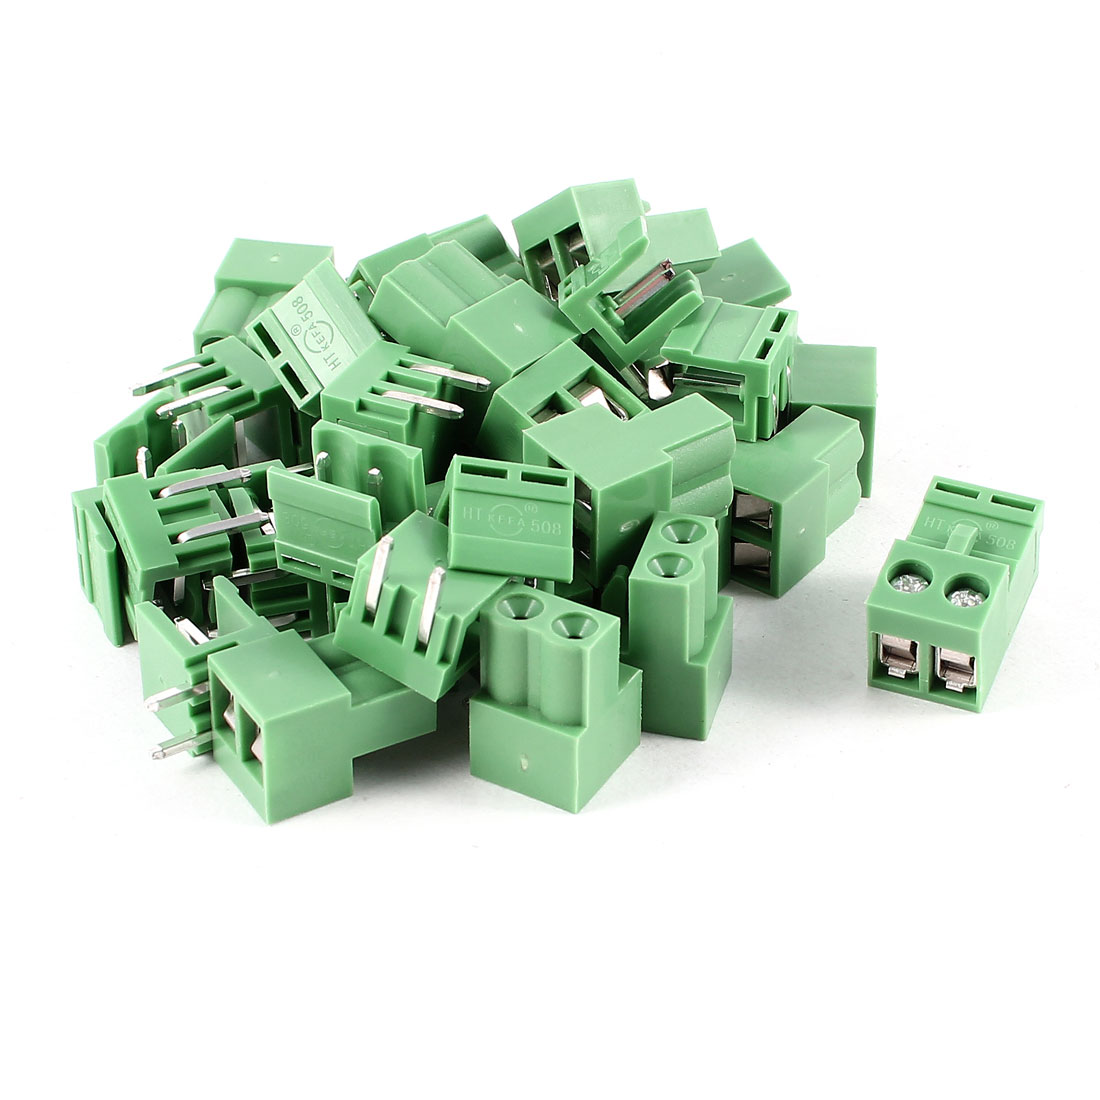 20 Pcs 2Pin 5.08mm Spacing PCB Screw Terminal Block Connector 300V 10A AWG14-26